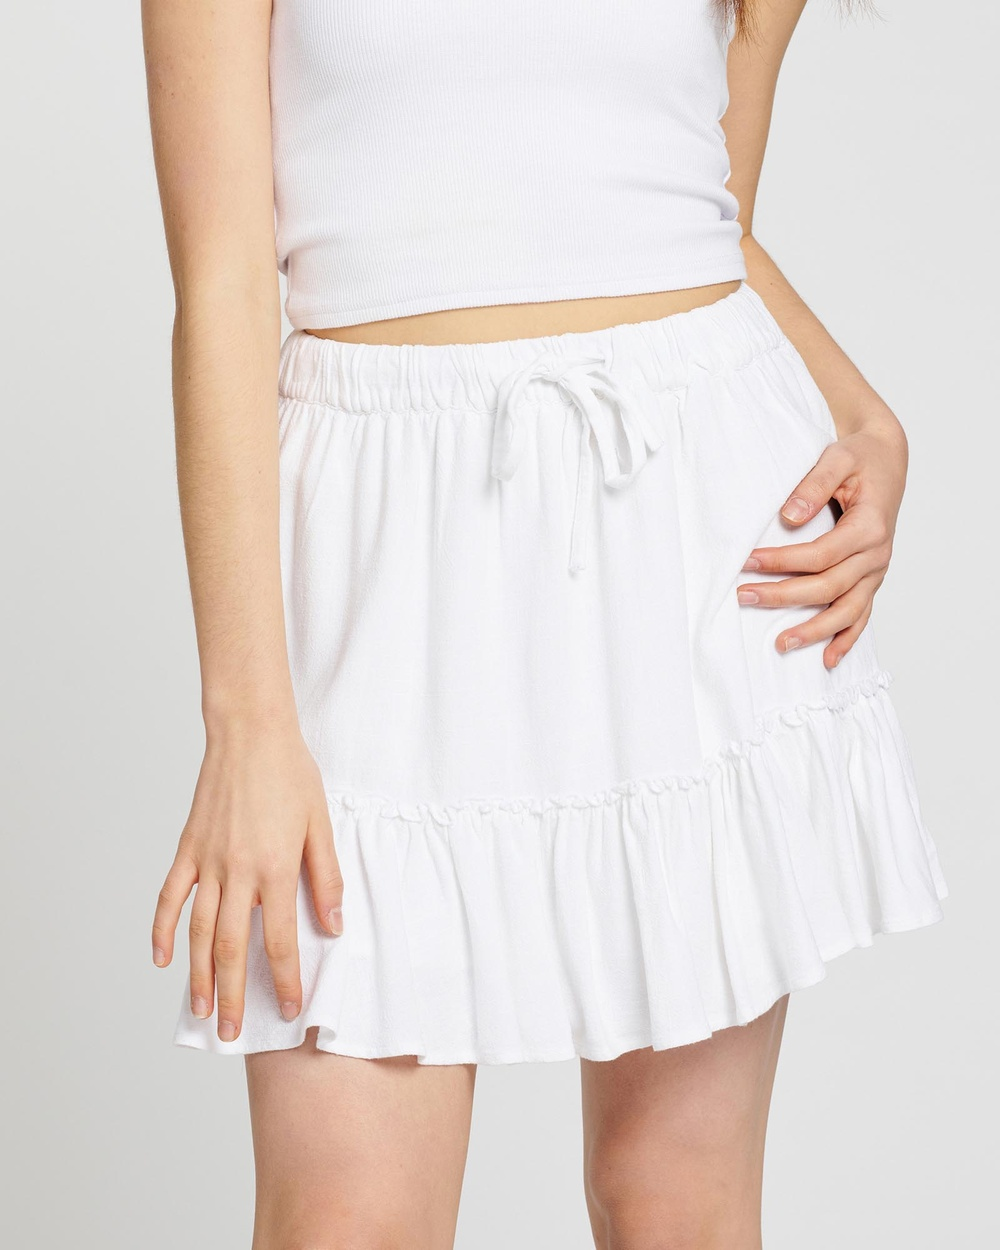 All About Eve Savanna Washed Skirt Skirts White